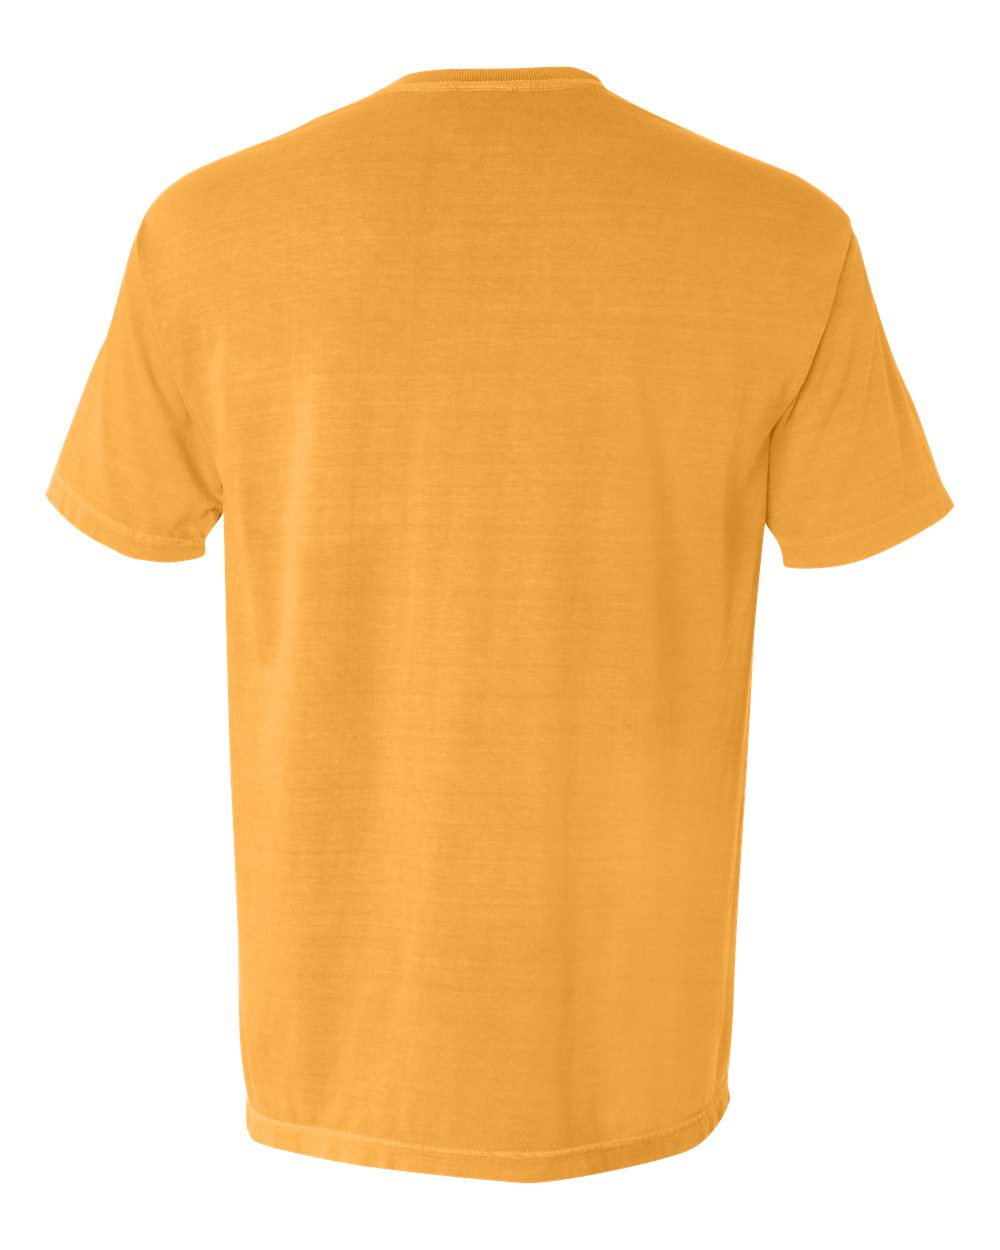 Comfort-Colors-Men-039-s-6-1-oz-Garment-Dyed-Pocket-T-Shirt-6030CC-S-3XL thumbnail 31